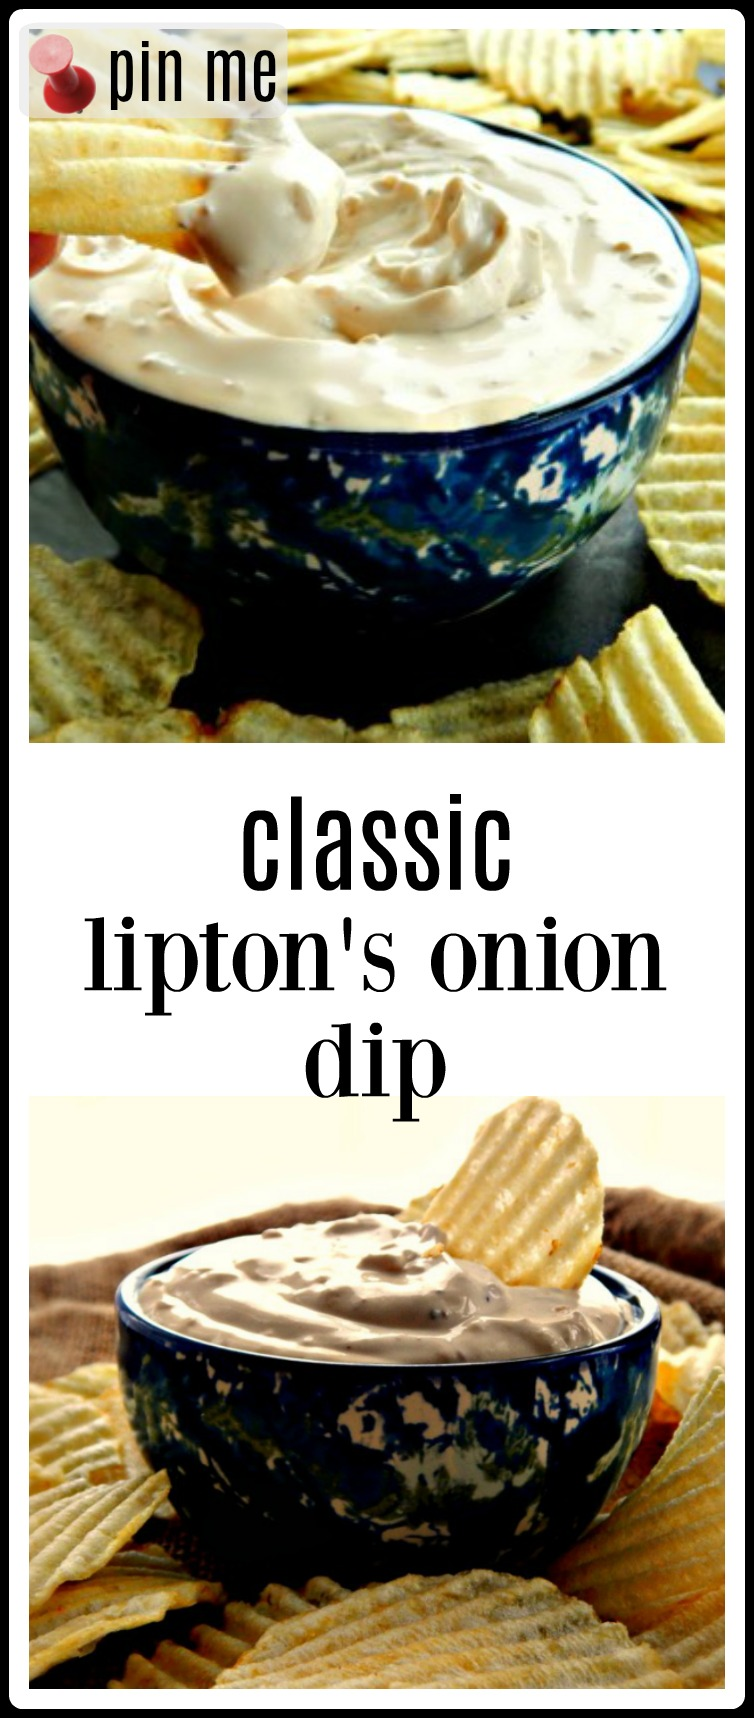 Did you grow up with this Classic Lipton's Onion Soup Dip made from Lipton's Onion Soup Mix and Sour Cream? I did, and we considered it a real treat at our house. After not trying it for literally decades I'm happy to say it was so much better than I expected! Much better than any dip in a carton from the store. #LiptonsOnionDip #ClassicLiptonsOnionDip #OnionSoupDip